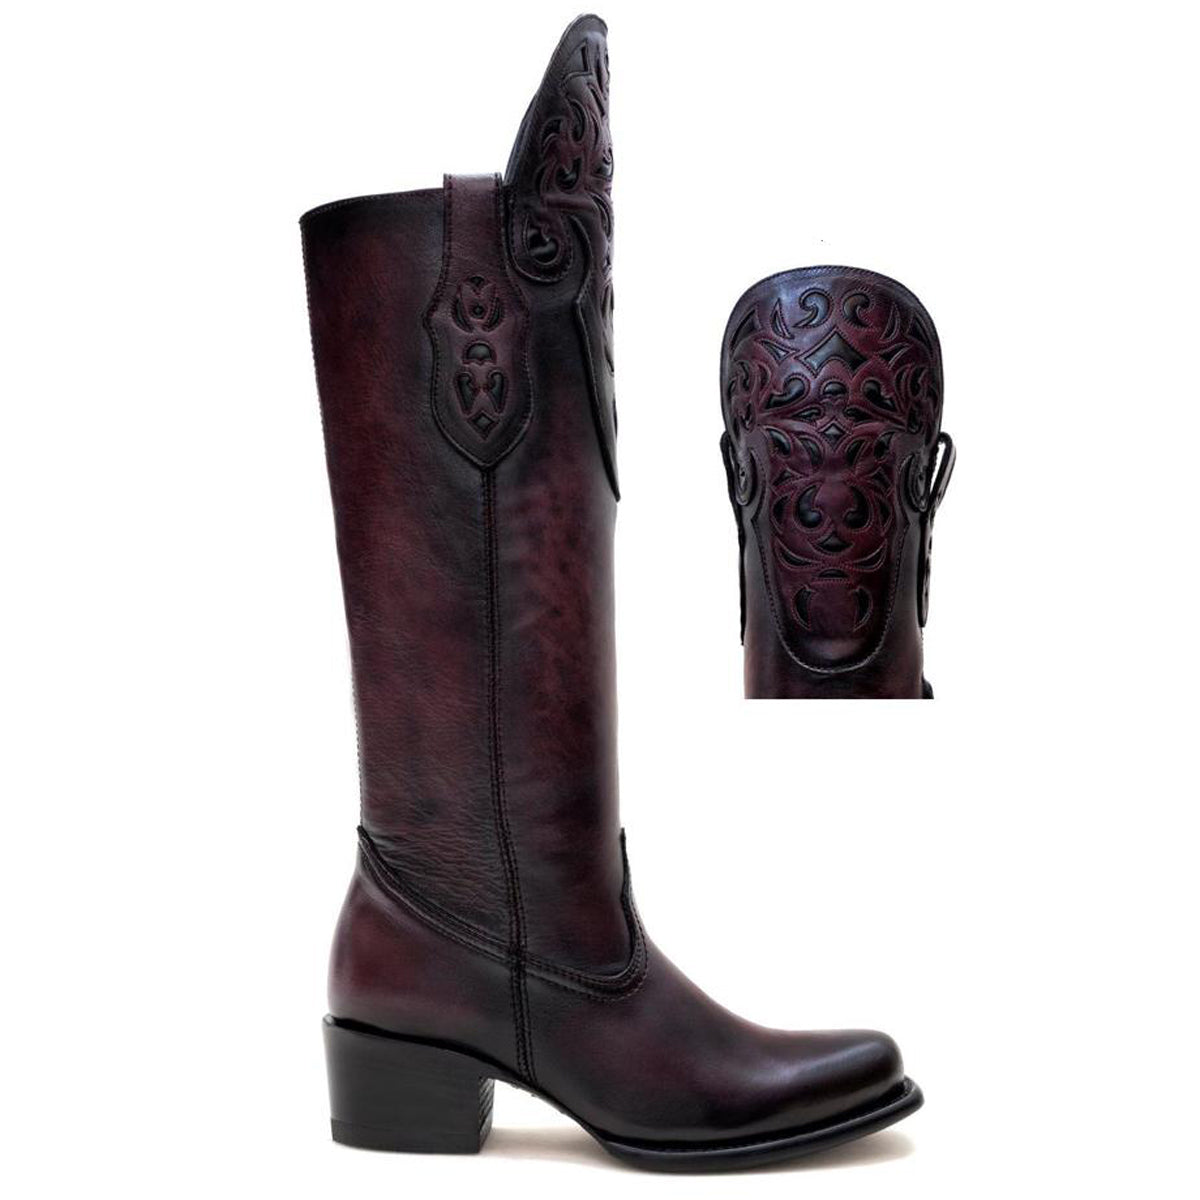 California Burgundy - High Boot